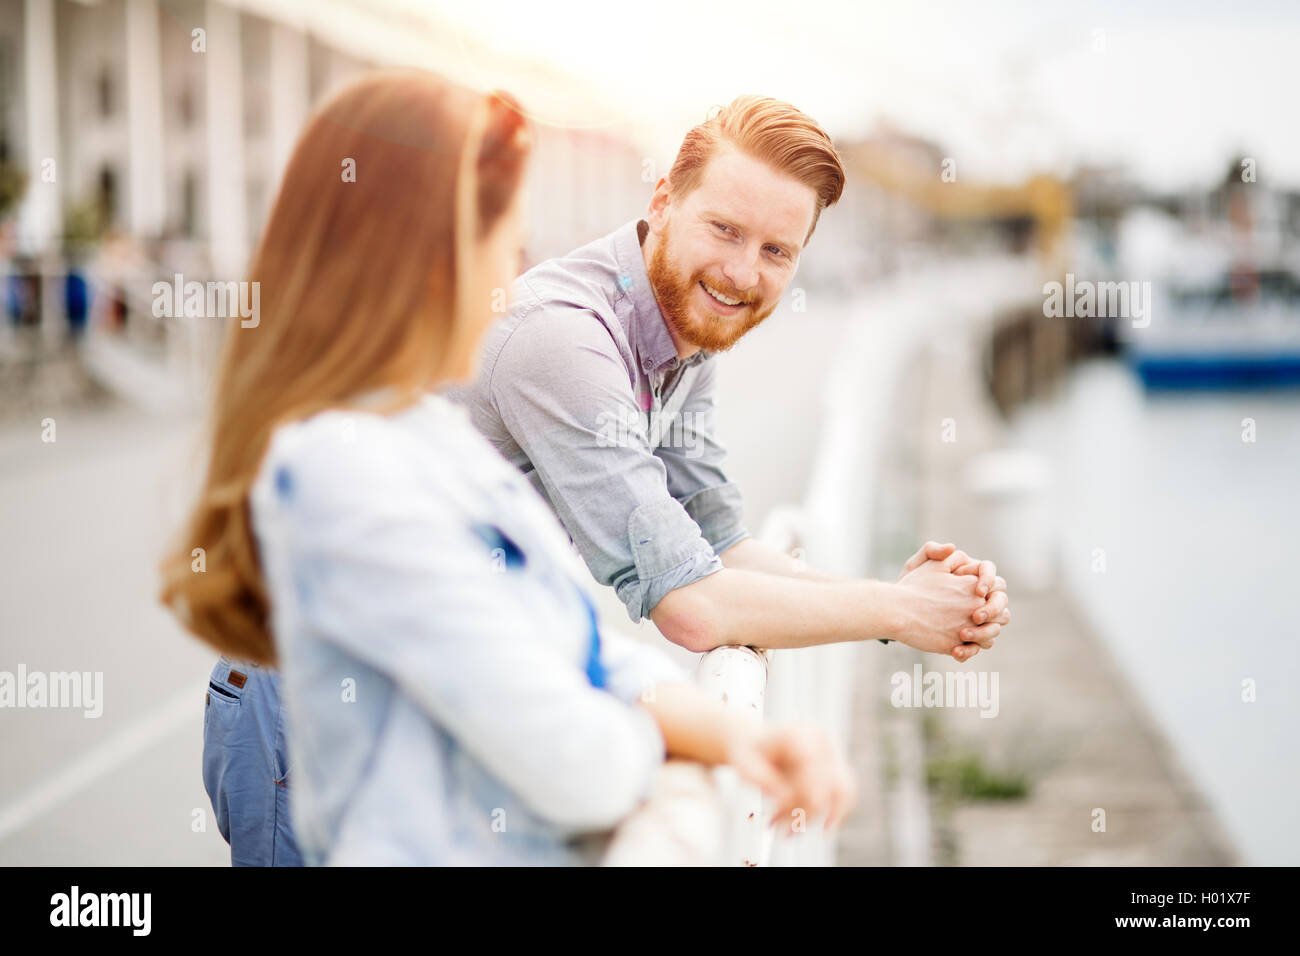 Romantic couple flirting and dating outdoors - Stock Image